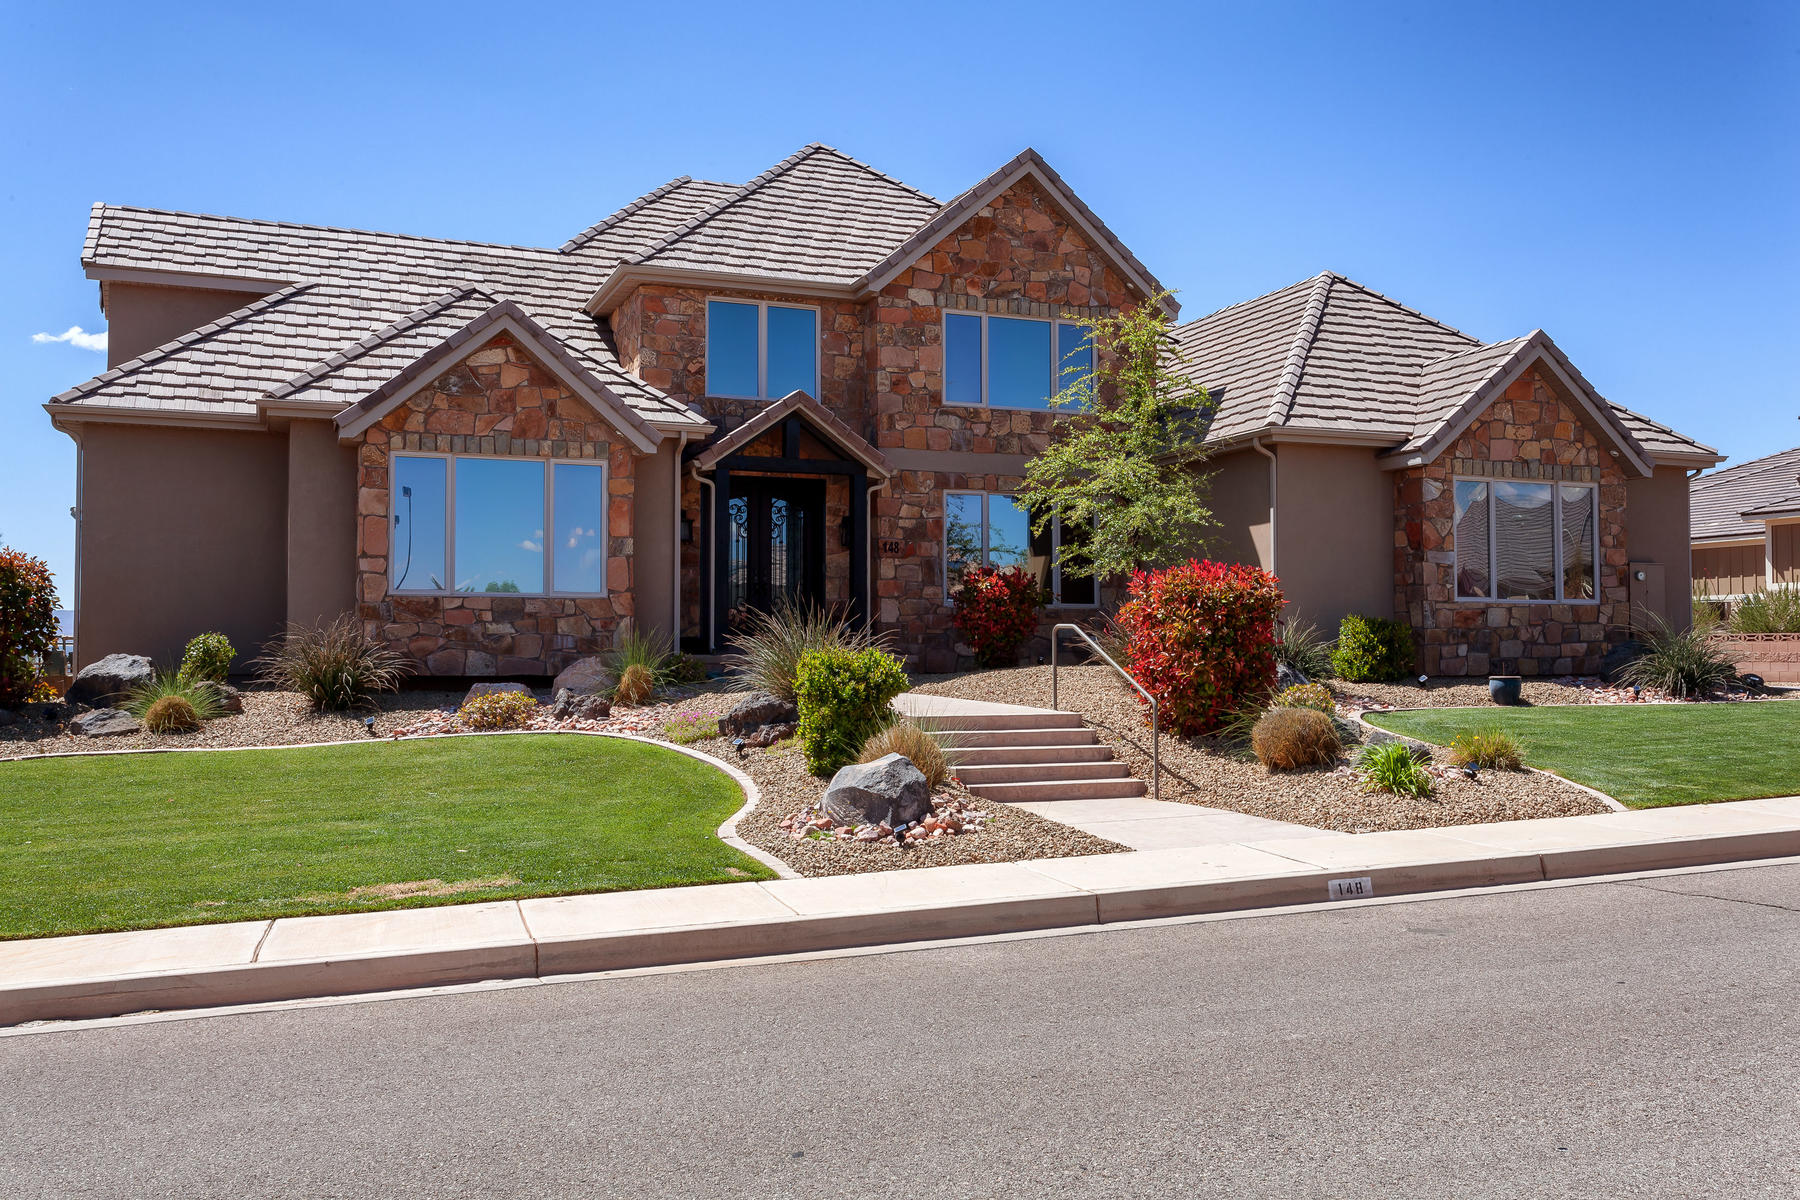 Single Family Home for Sale at Grand View of St. George and Surrounding Mountains 148 South Eastridge Dr St. George, Utah, 84790 United States